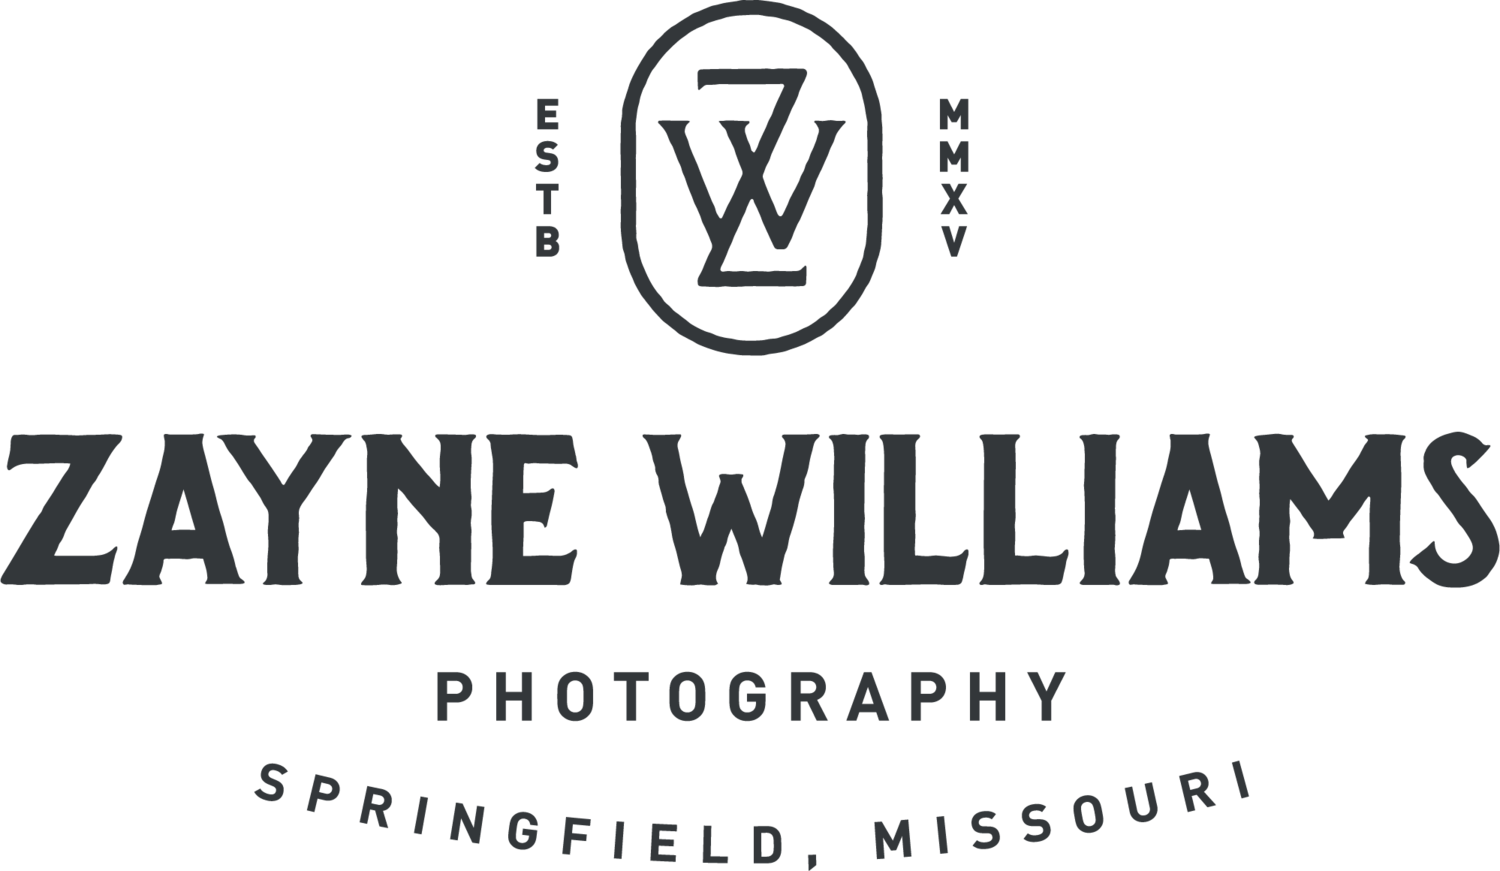 Zayne Williams Photo